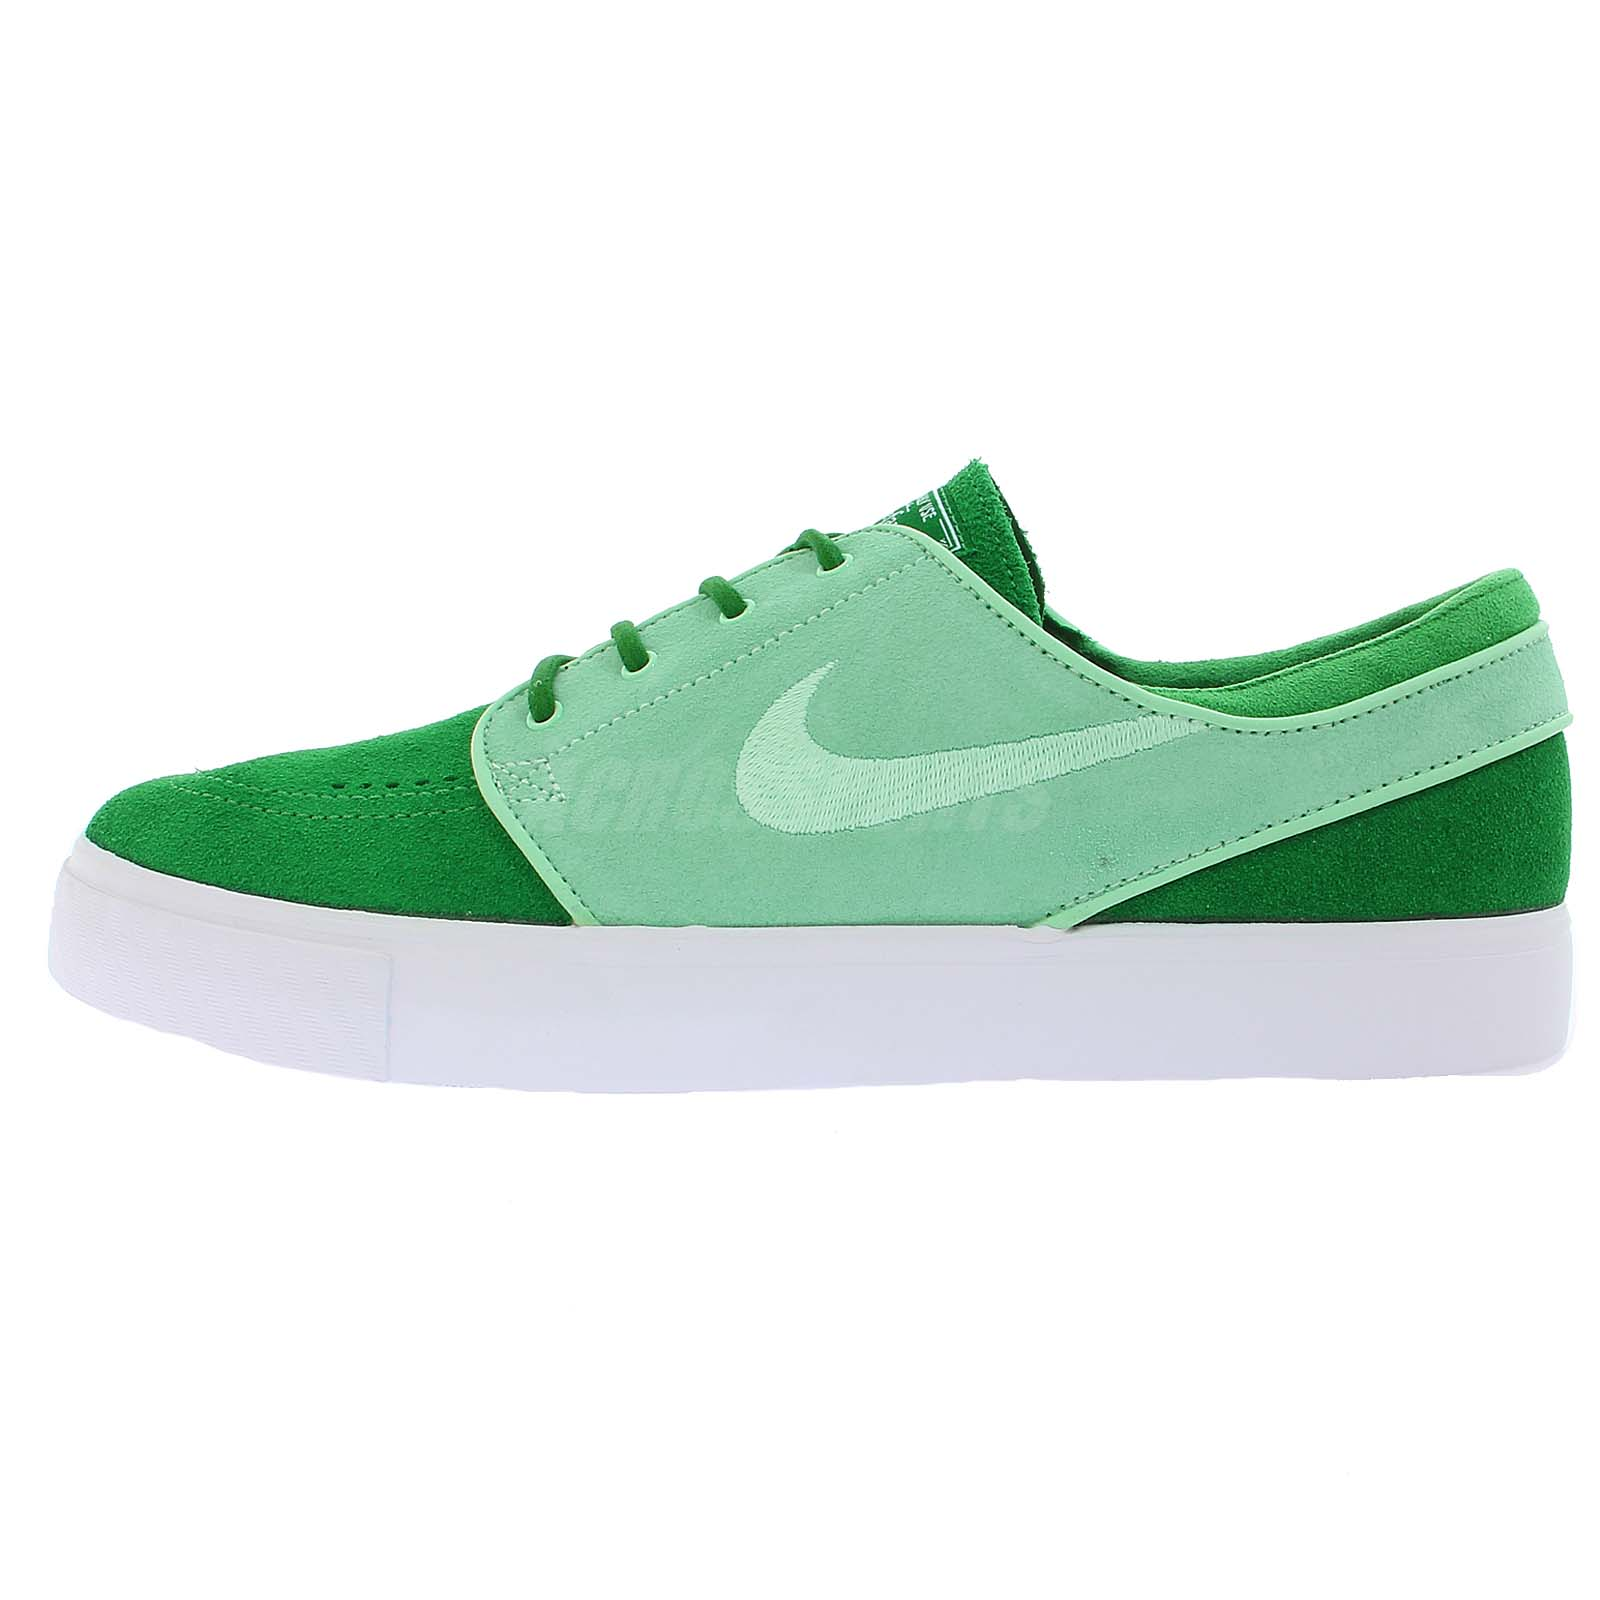 Wonderful Nike Casual Shoes For Women 2013 Training Amp Gym Walking Nike